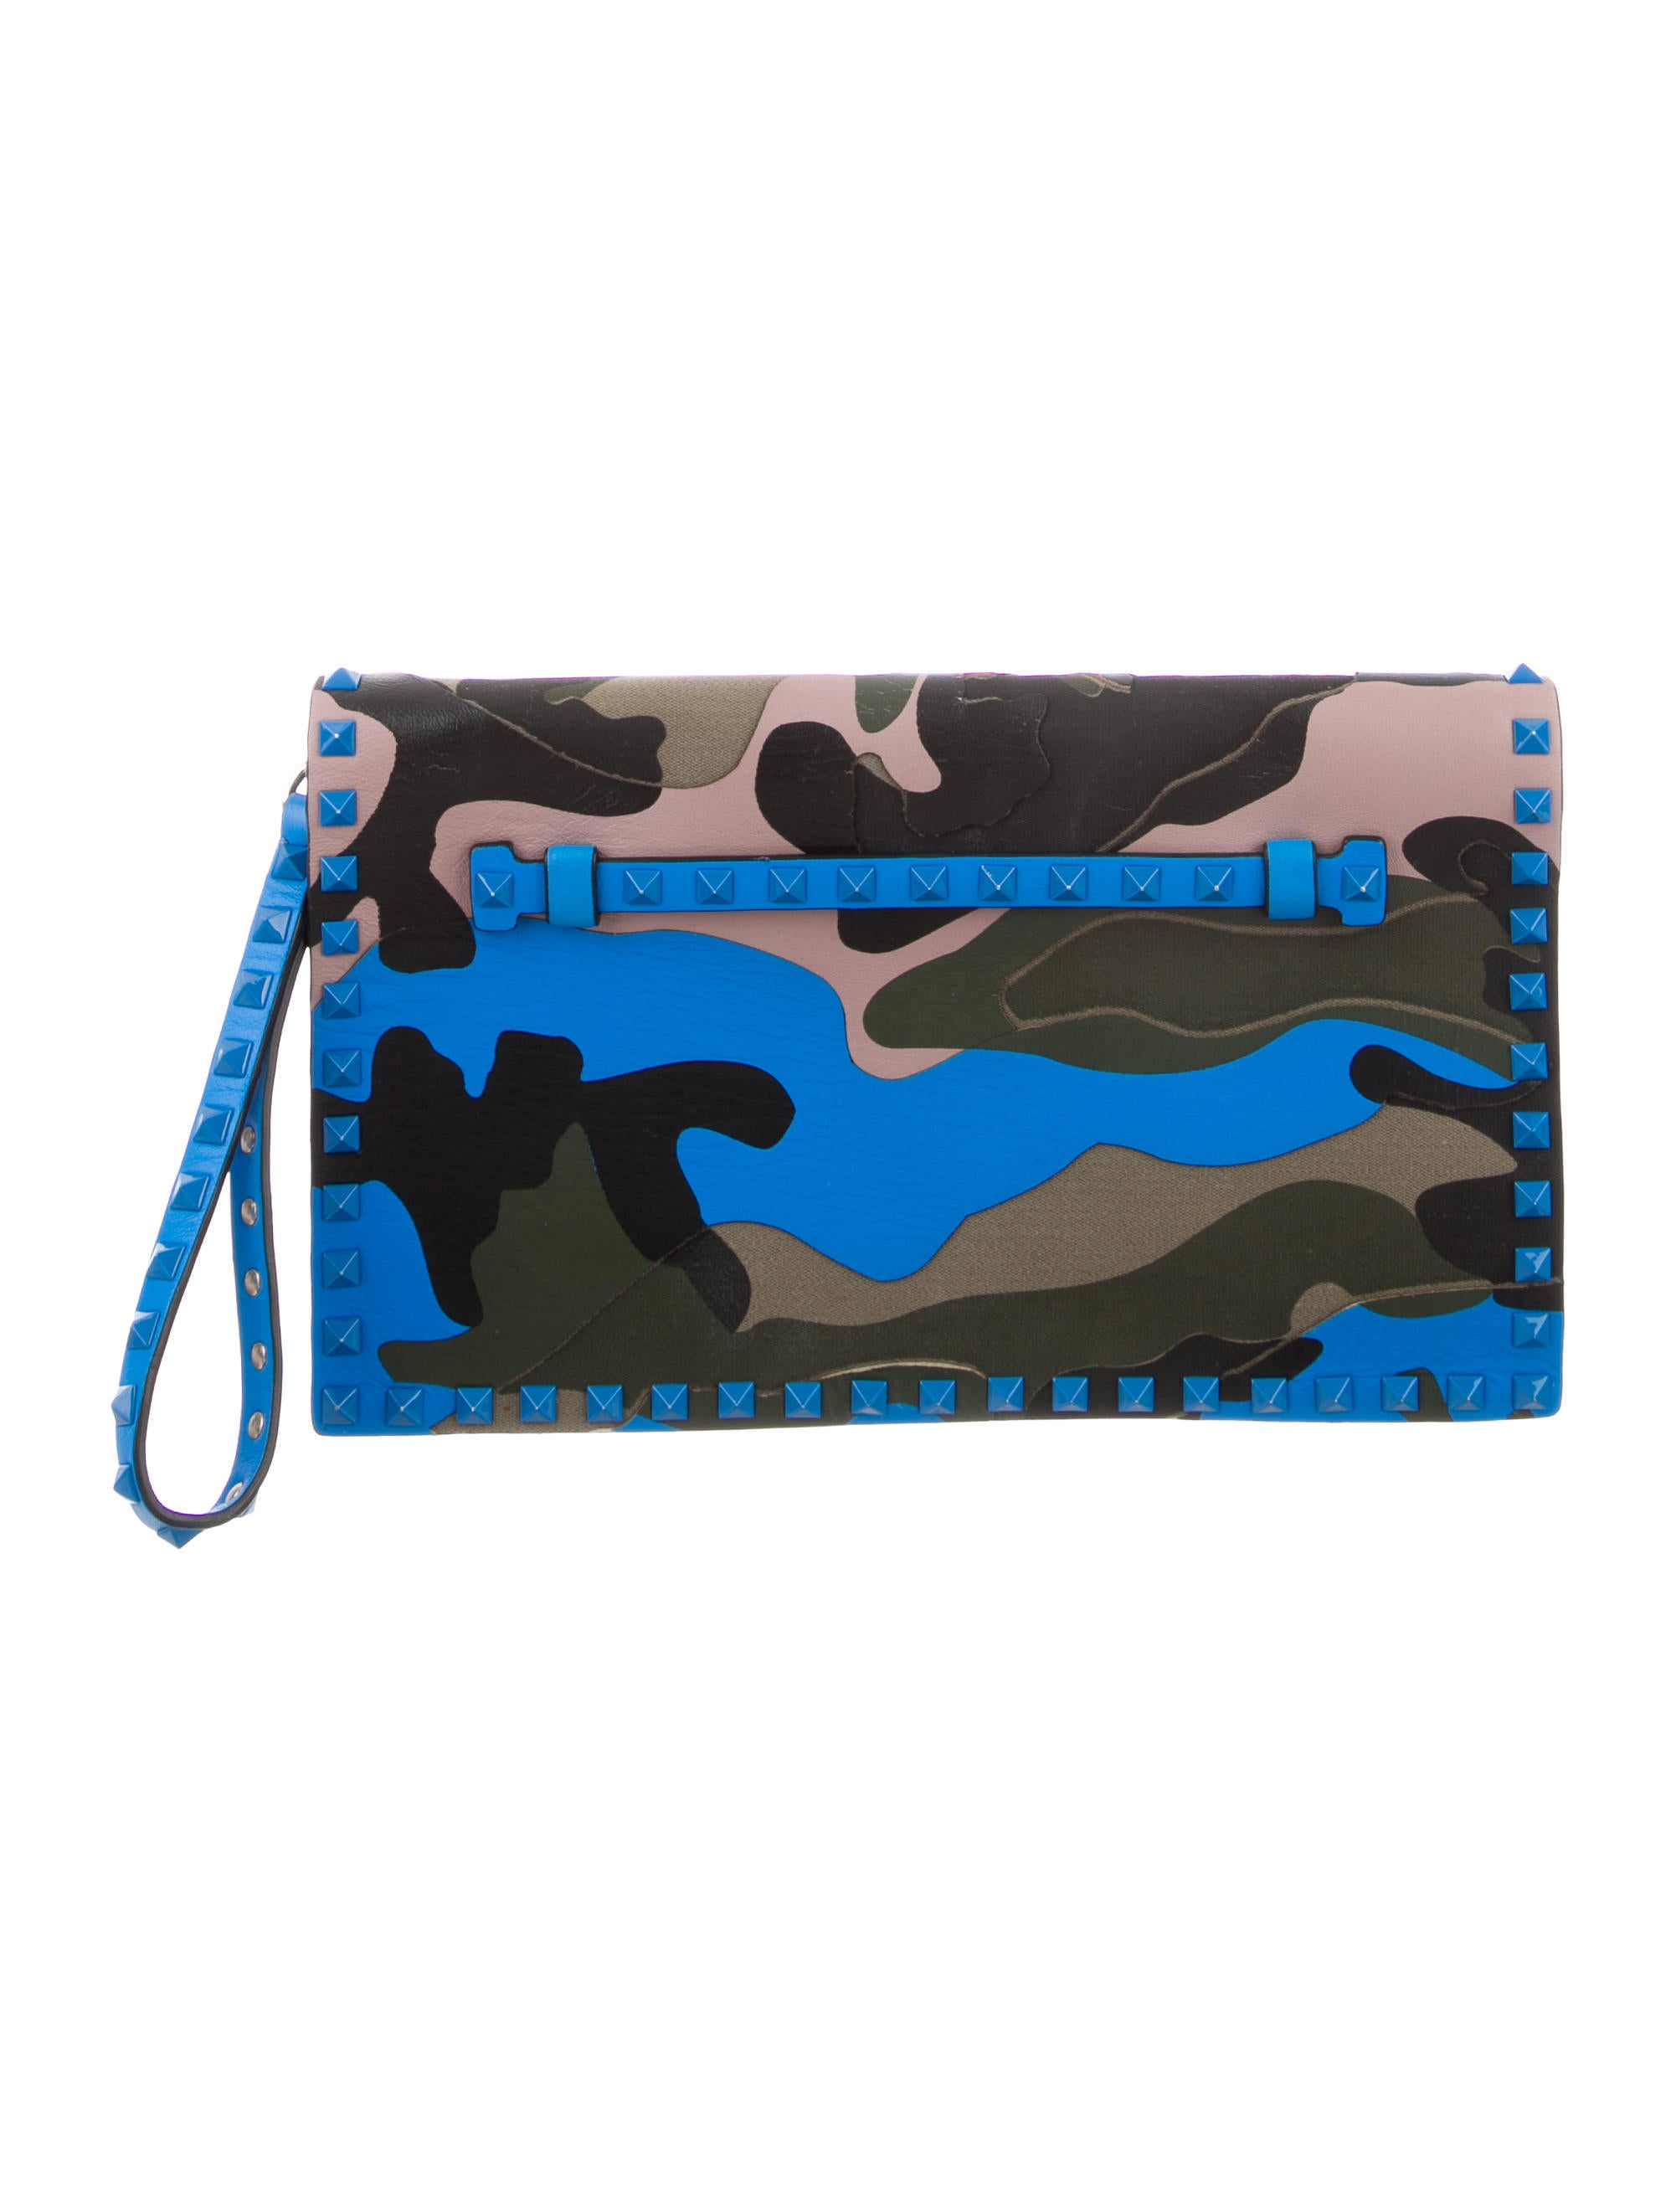 57049ae104 Clutches | The RealReal